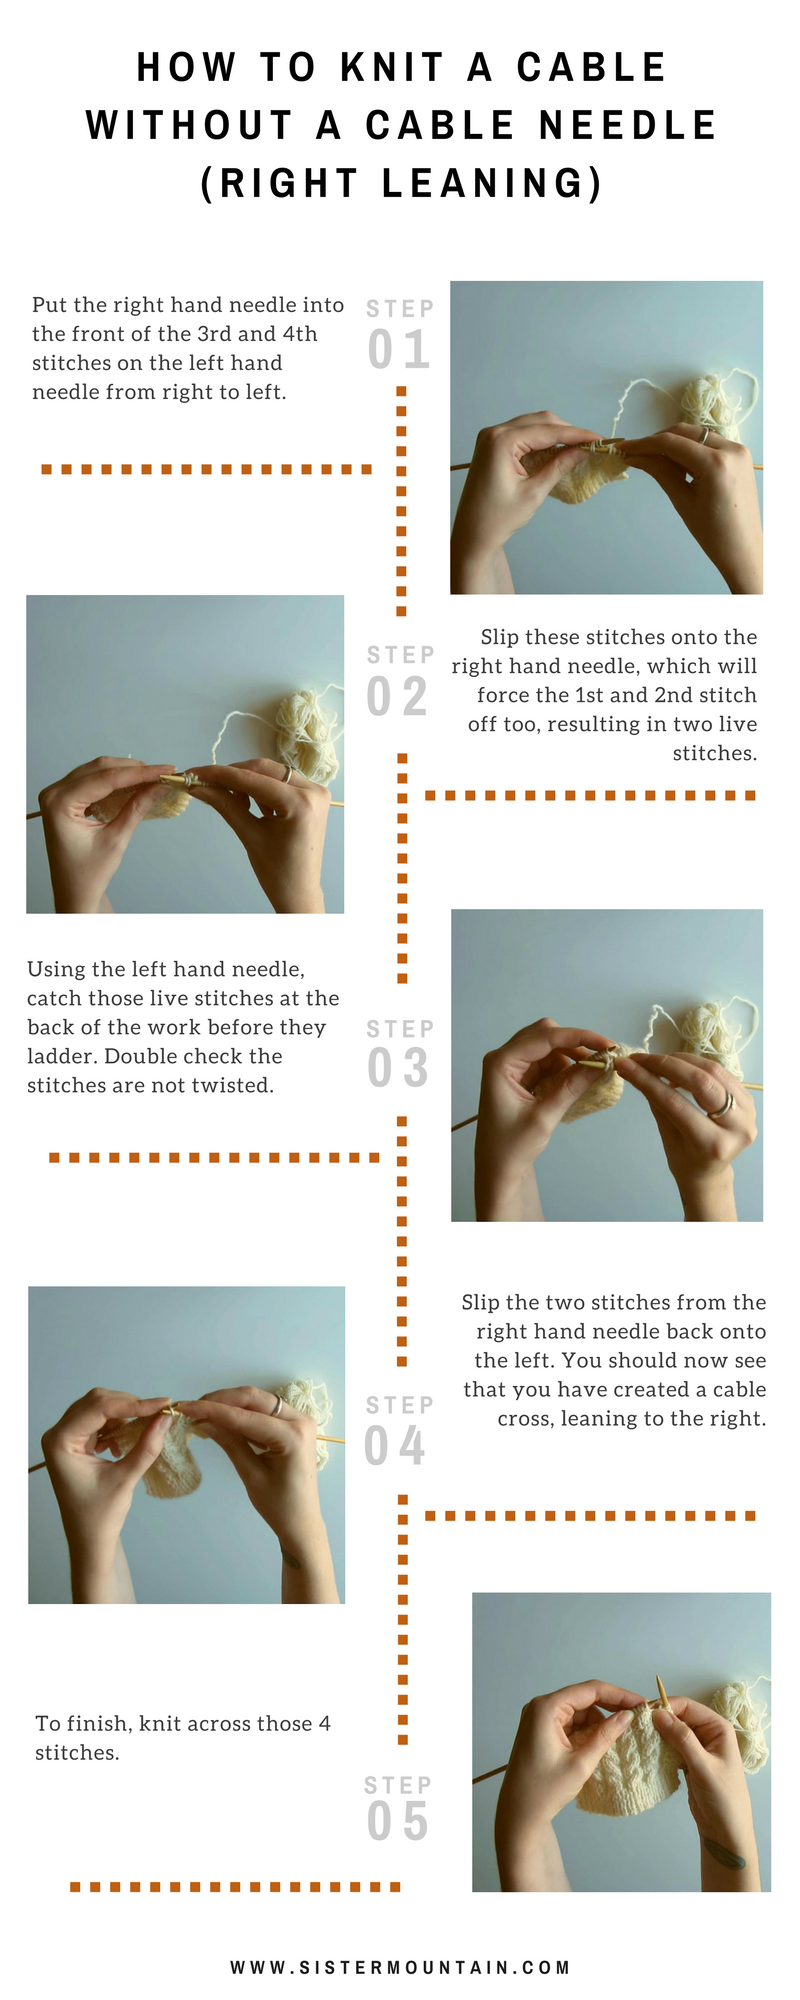 How to Knit a Cable Without a Cable Needle